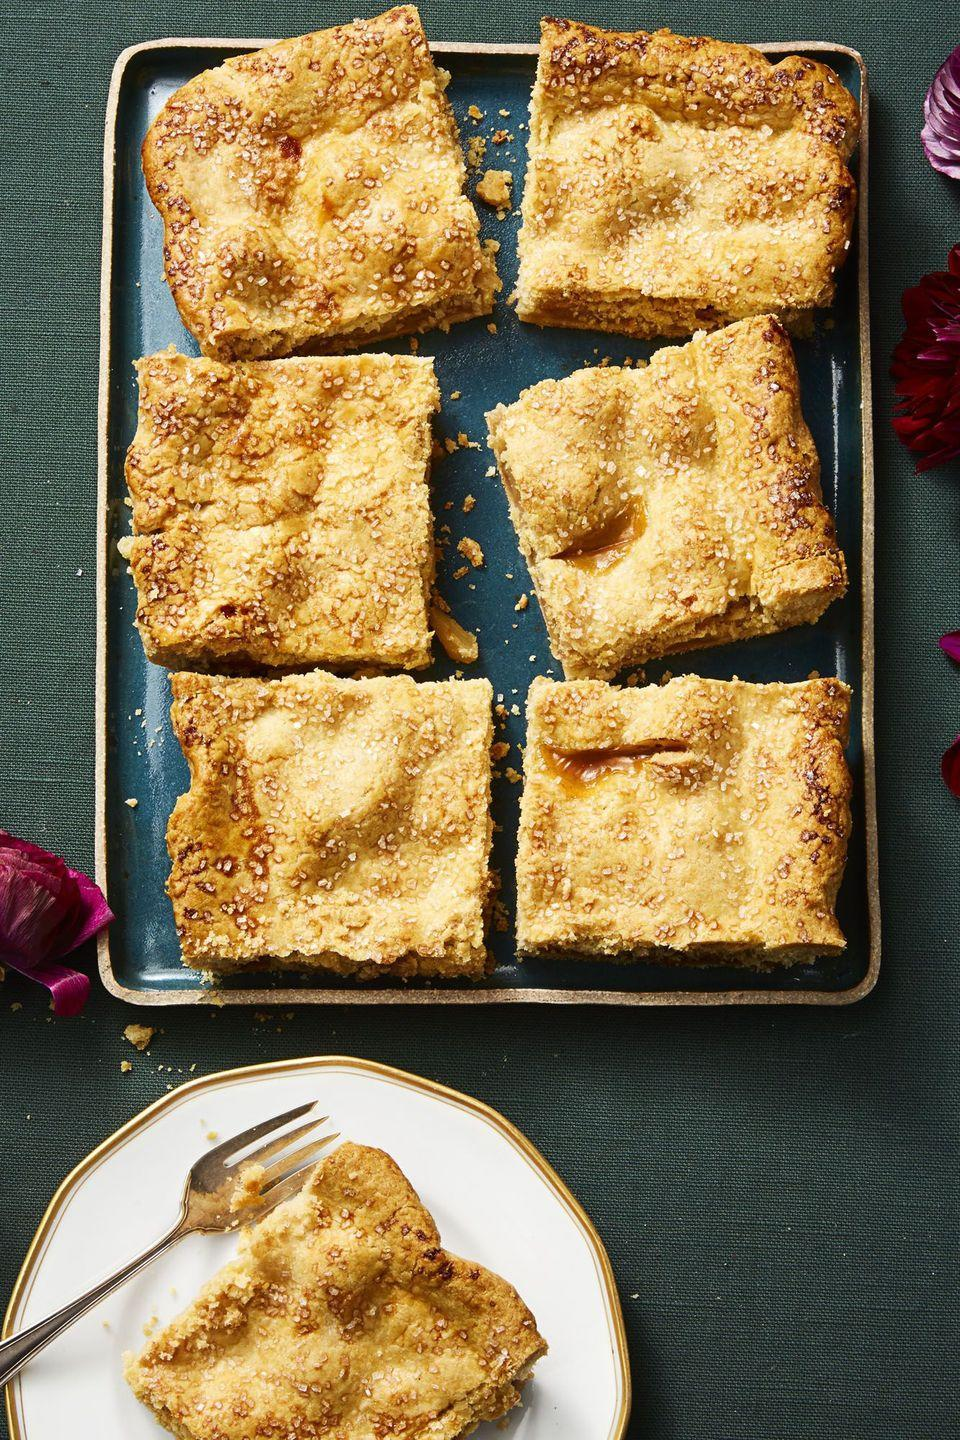 "<p>Use a sheet pan to turn everyone's favorite fruity pie into one that can feed a whole crowd. </p><p><em><a href=""https://www.goodhousekeeping.com/food-recipes/a14801/sparkly-apple-slab-pie-recipe-ghk1114/"" rel=""nofollow noopener"" target=""_blank"" data-ylk=""slk:Get the recipe for Sparkly Apple Slab Pie »"" class=""link rapid-noclick-resp"">Get the recipe for Sparkly Apple Slab Pie »</a></em> </p>"